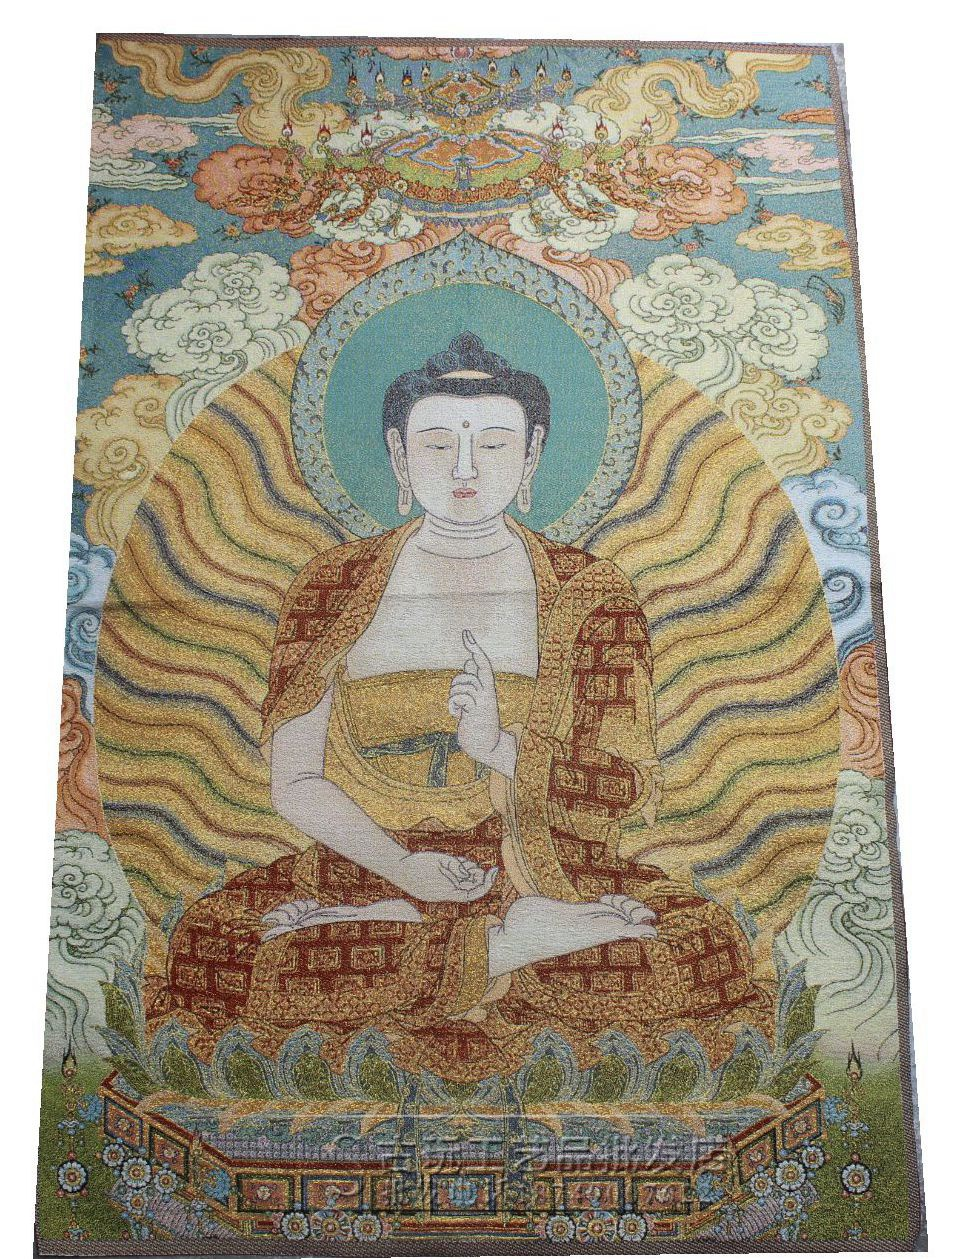 Wholesale Miscellaneous antiques Buddhist supplies Tibet Tibetan Thangka embroidery exquisite embroidery